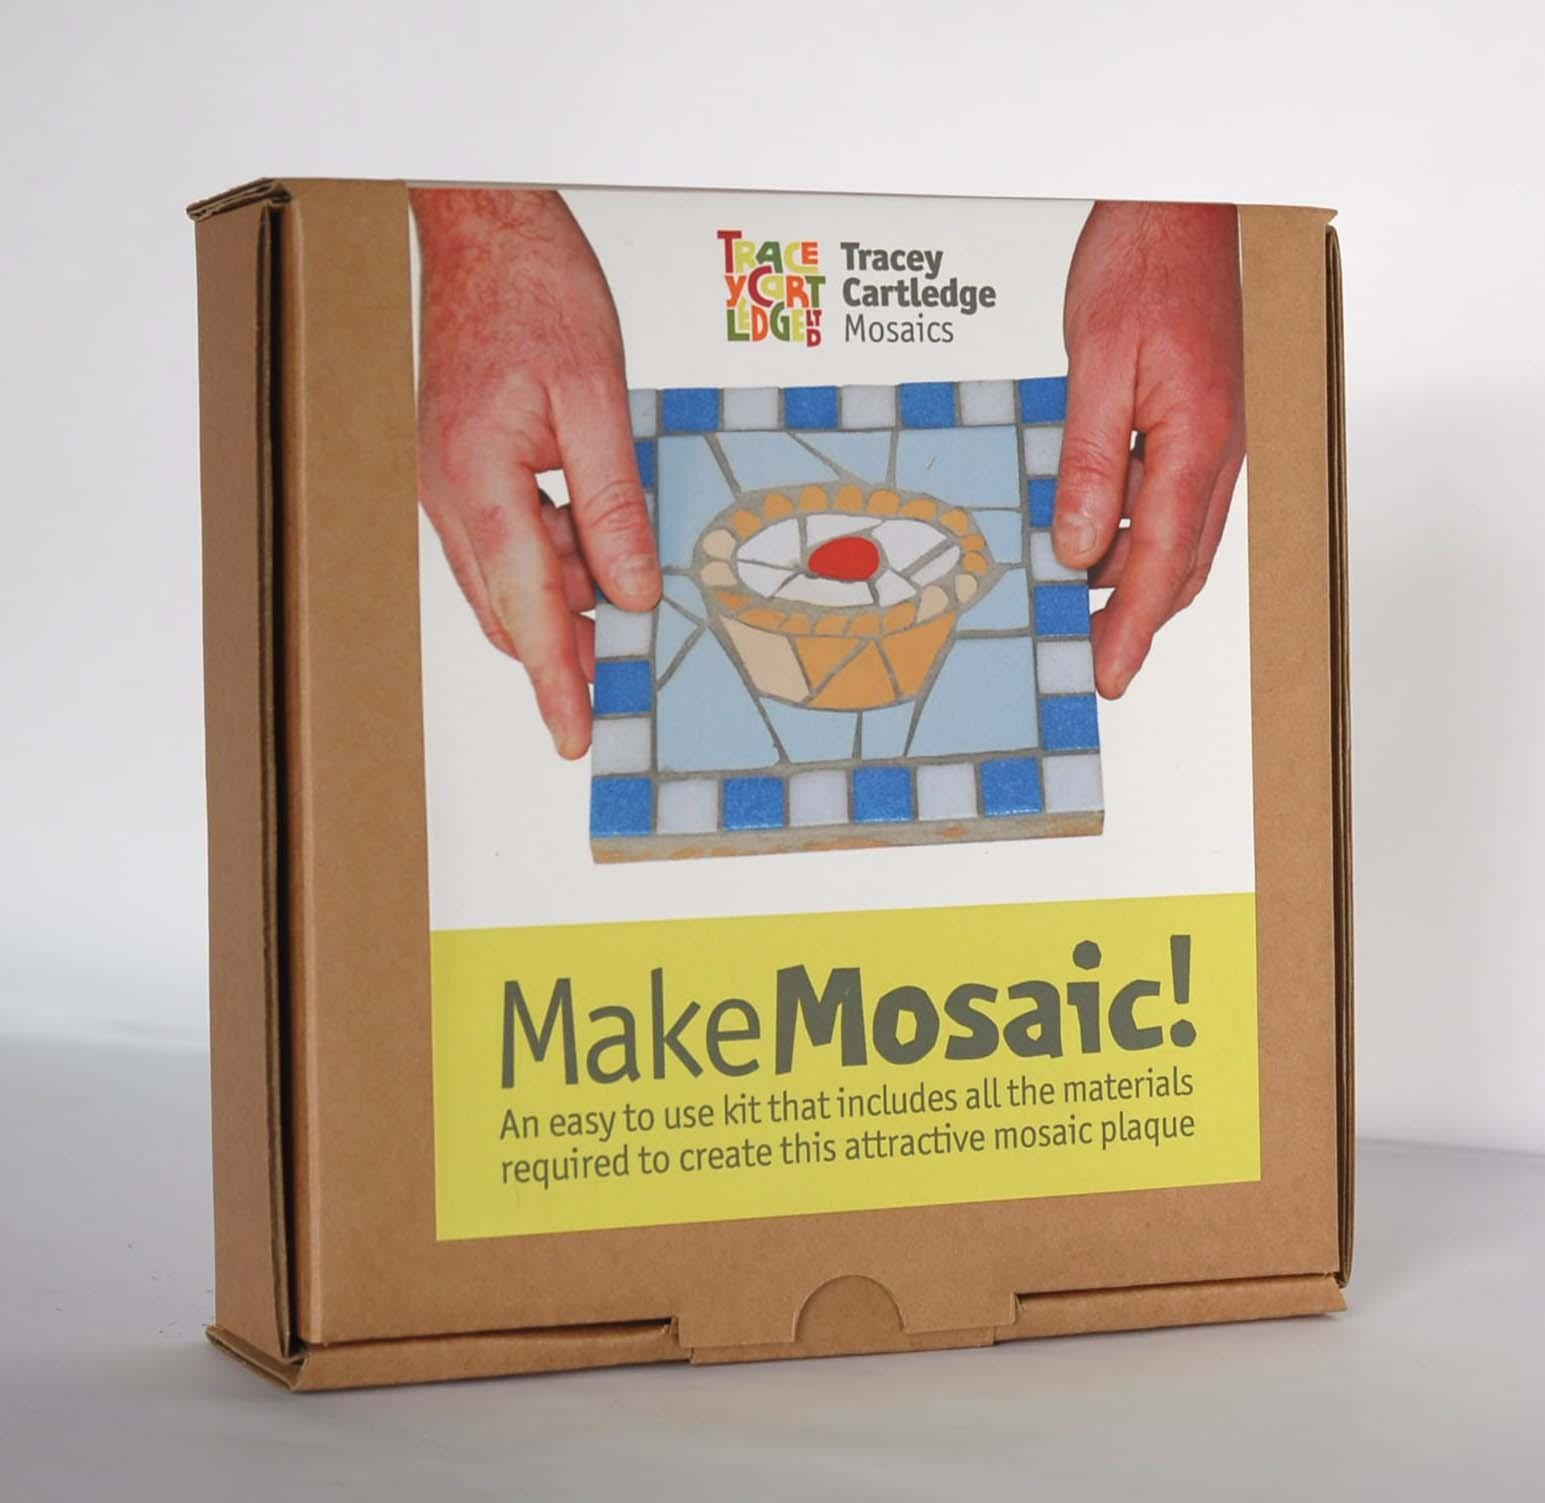 Makemosaic The Kits | Tracey Cartledge Artist Pertaining To Mosaic Art Kits For Adults (Image 15 of 20)